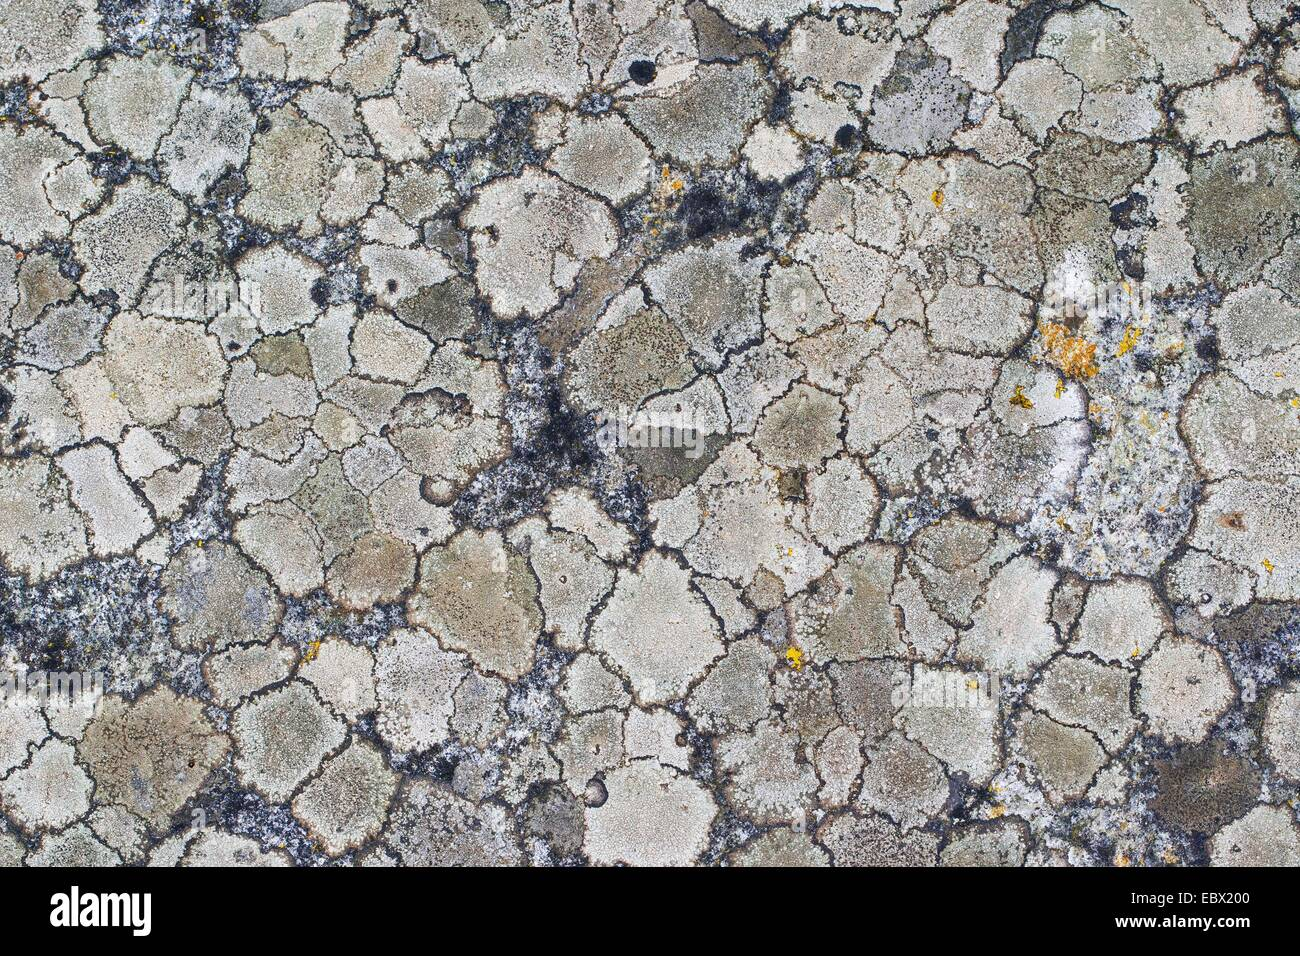 several different crustose lichenes on a rock in the Alps, Germany - Stock Image